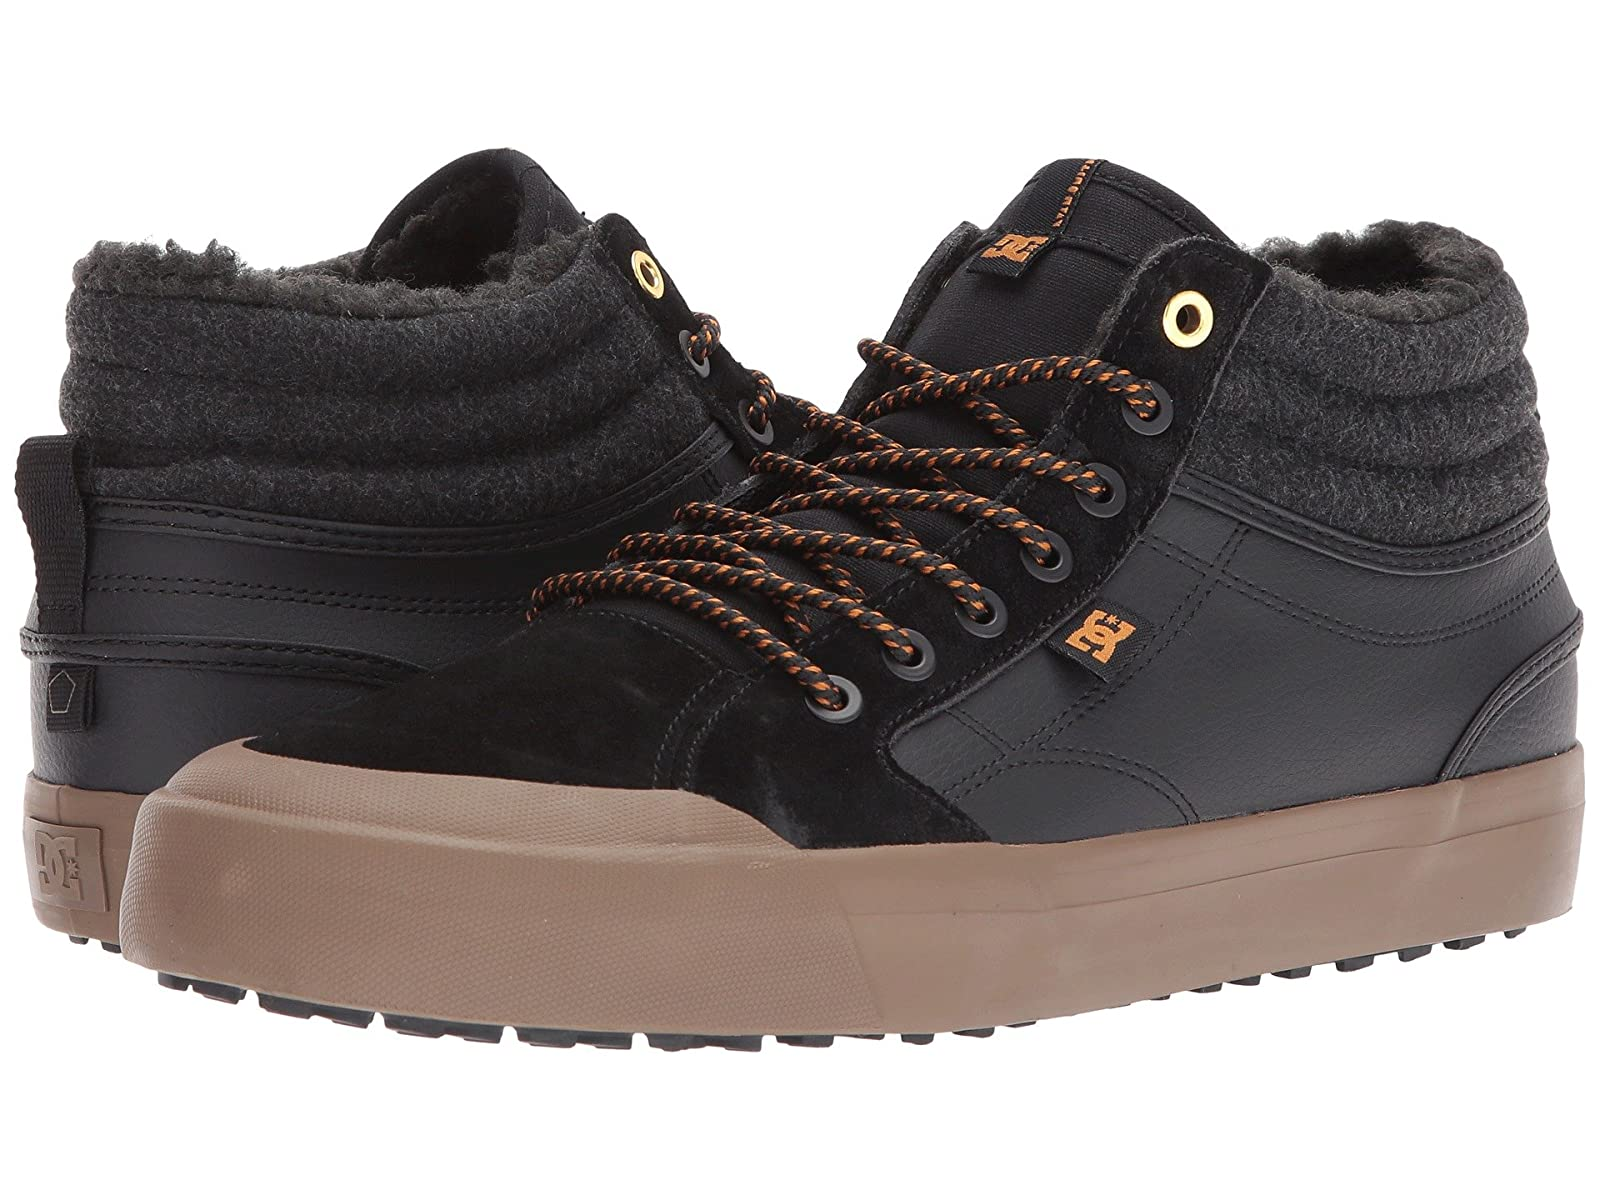 DC Evan Smith Hi WNTAtmospheric grades have affordable shoes